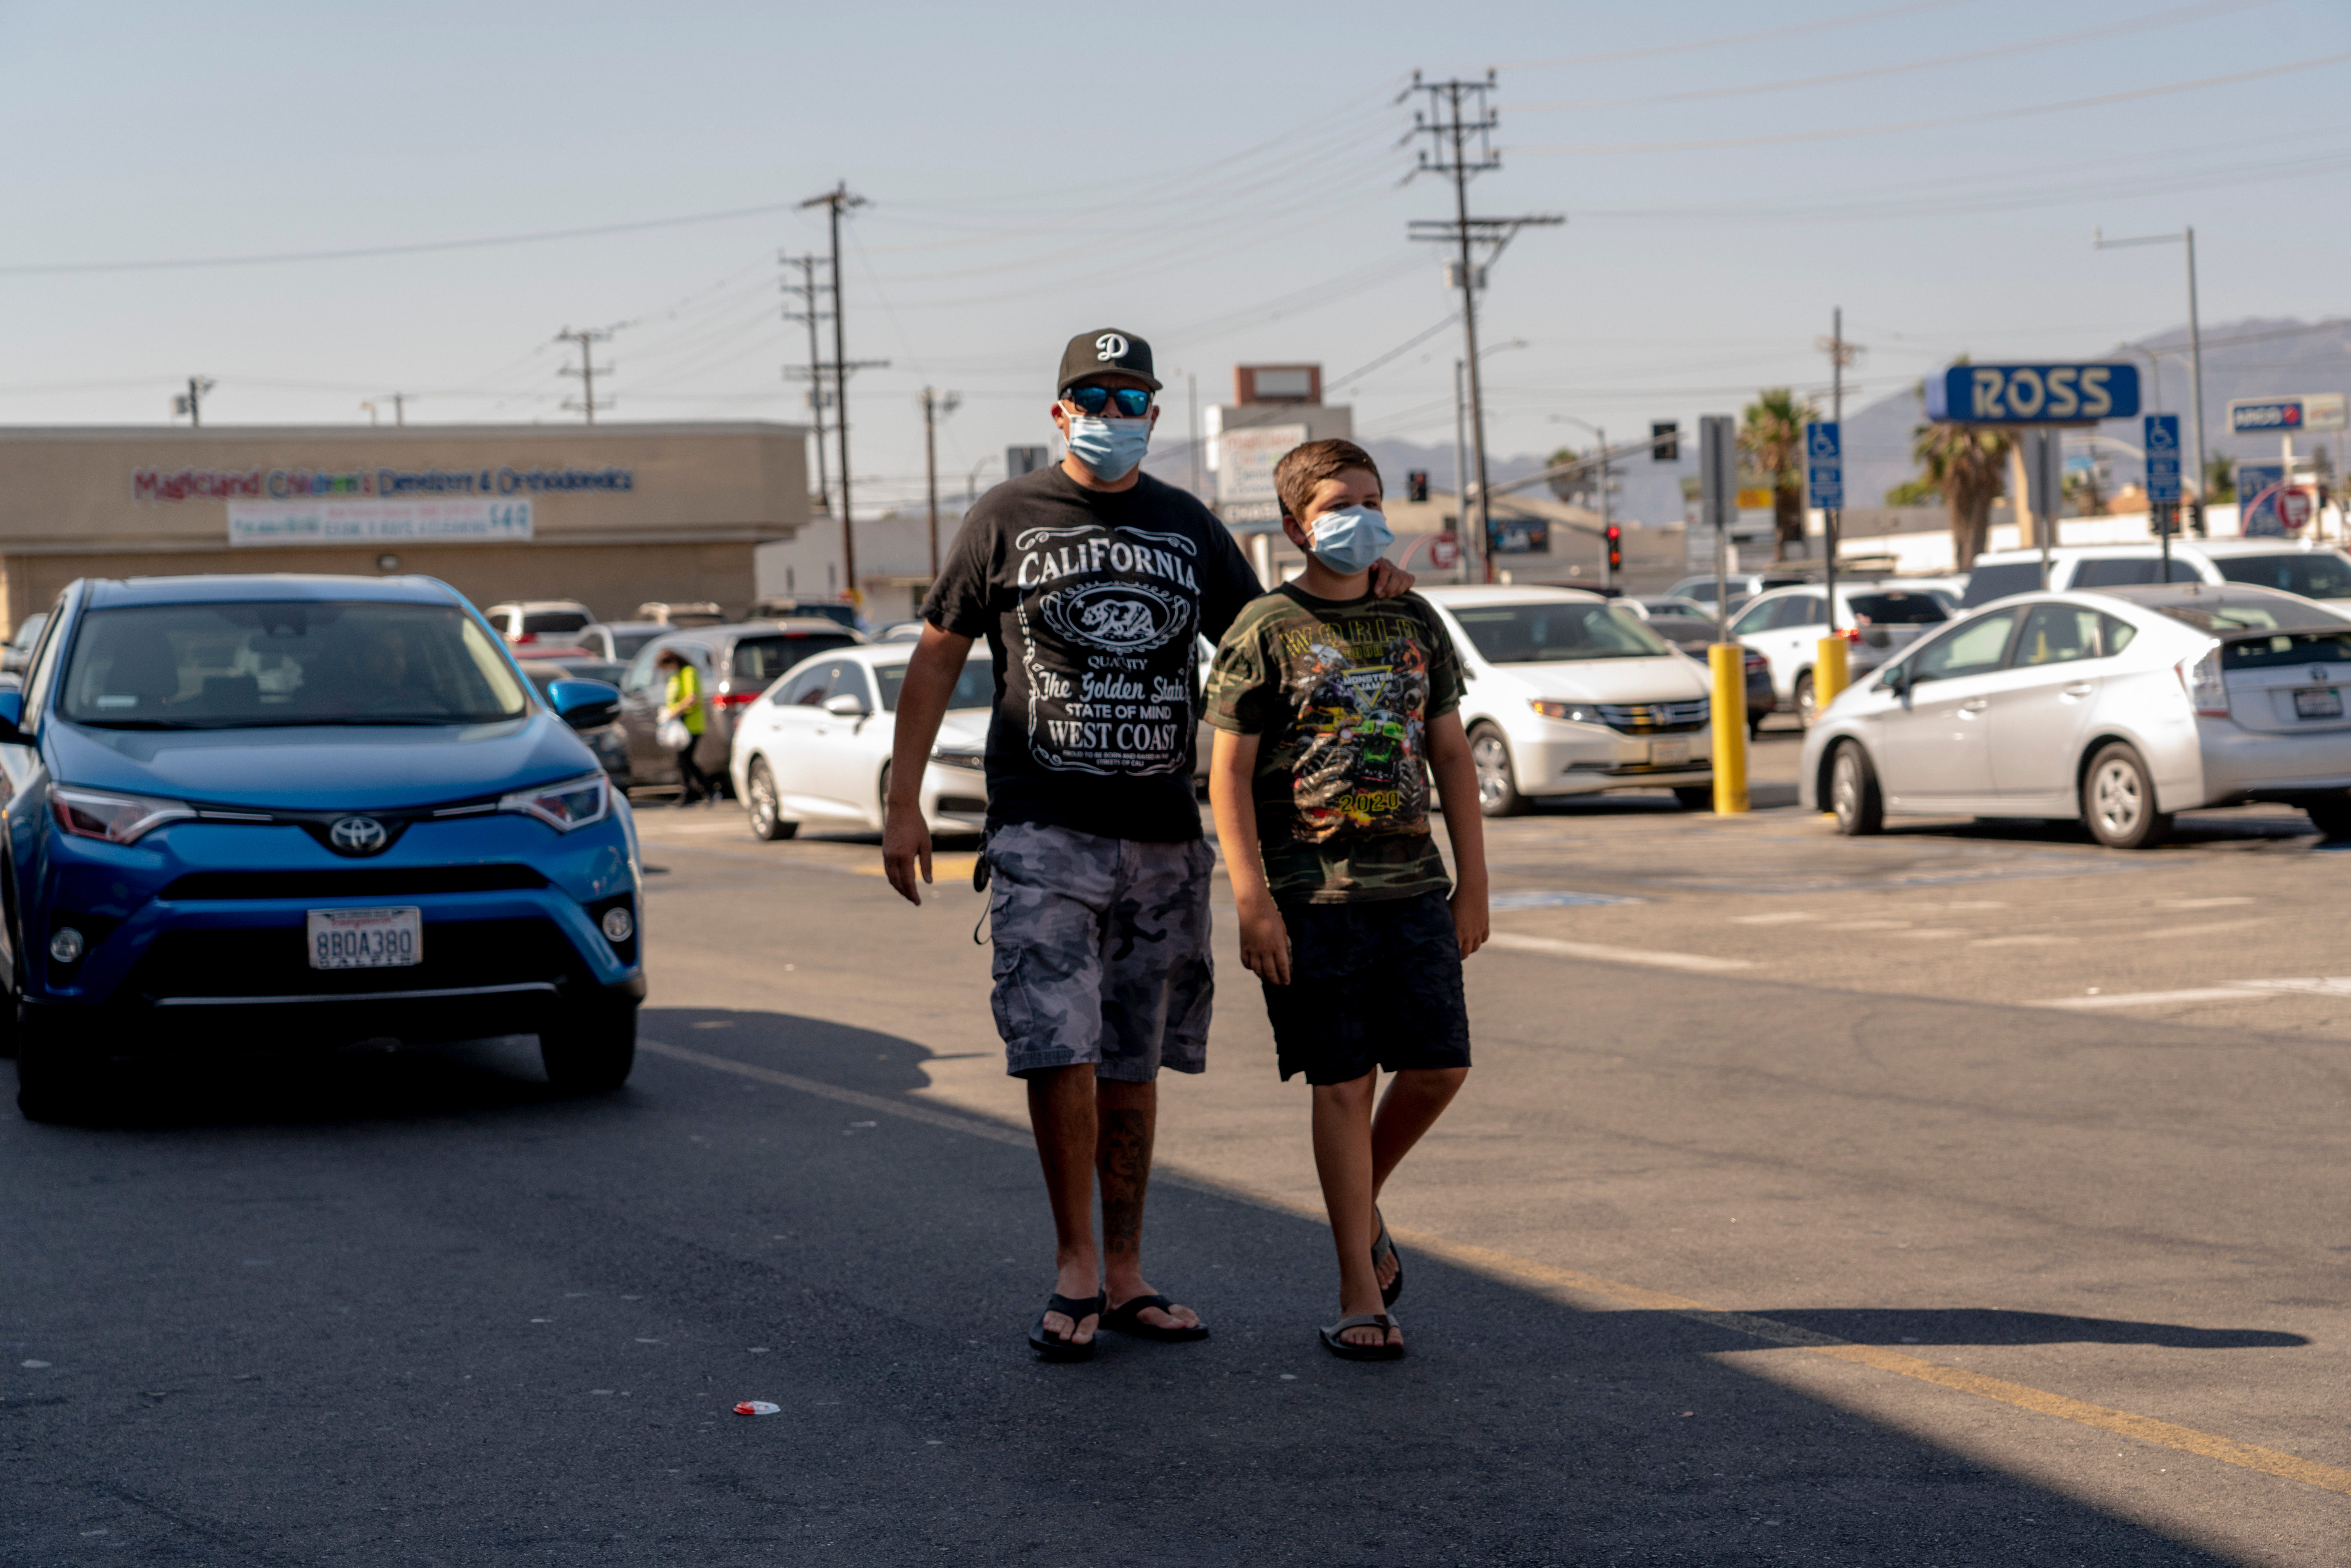 Joel Reynozo, left, walks with his son, Jared, 11, after leaving a Target store in Pacoima last week. Reynozo, who is unvaccinated, says he would pull his son out of Los Angeles Unified if the district requires students to be vaccinated.